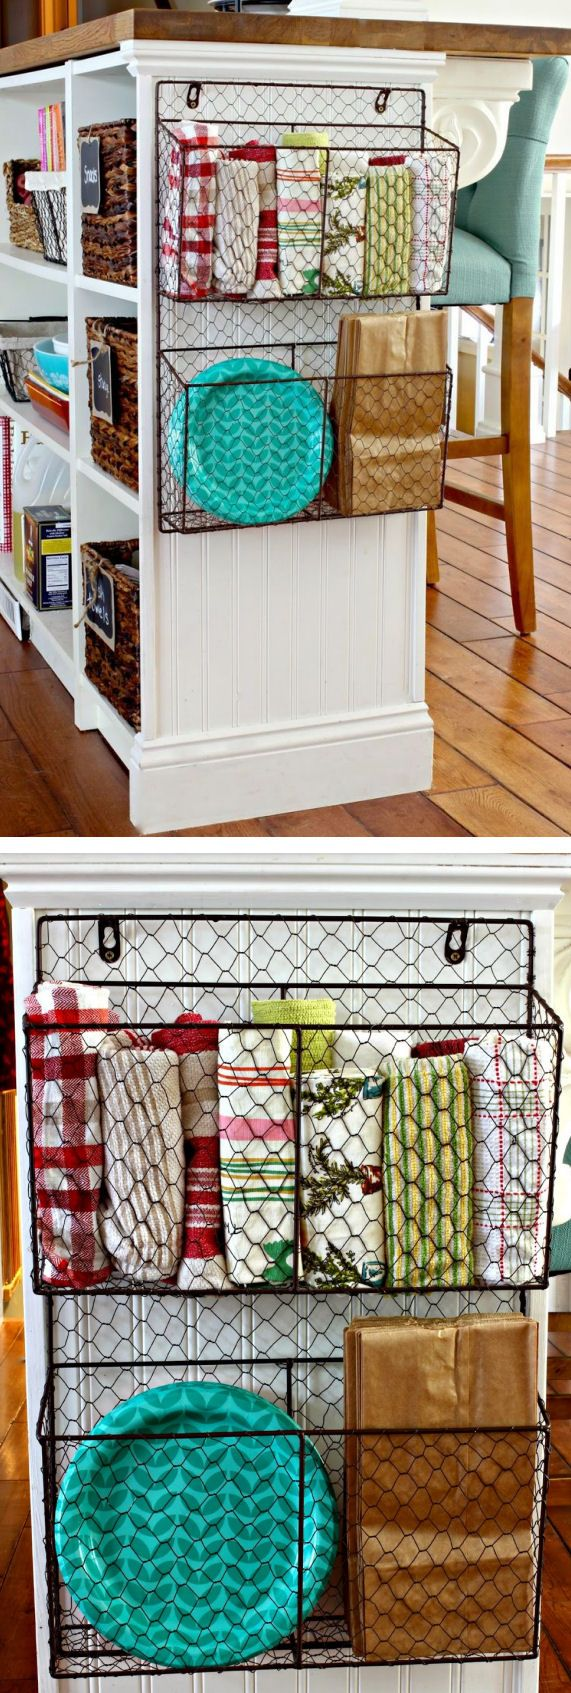 Hanging Wire Basket For Kitchen Storage